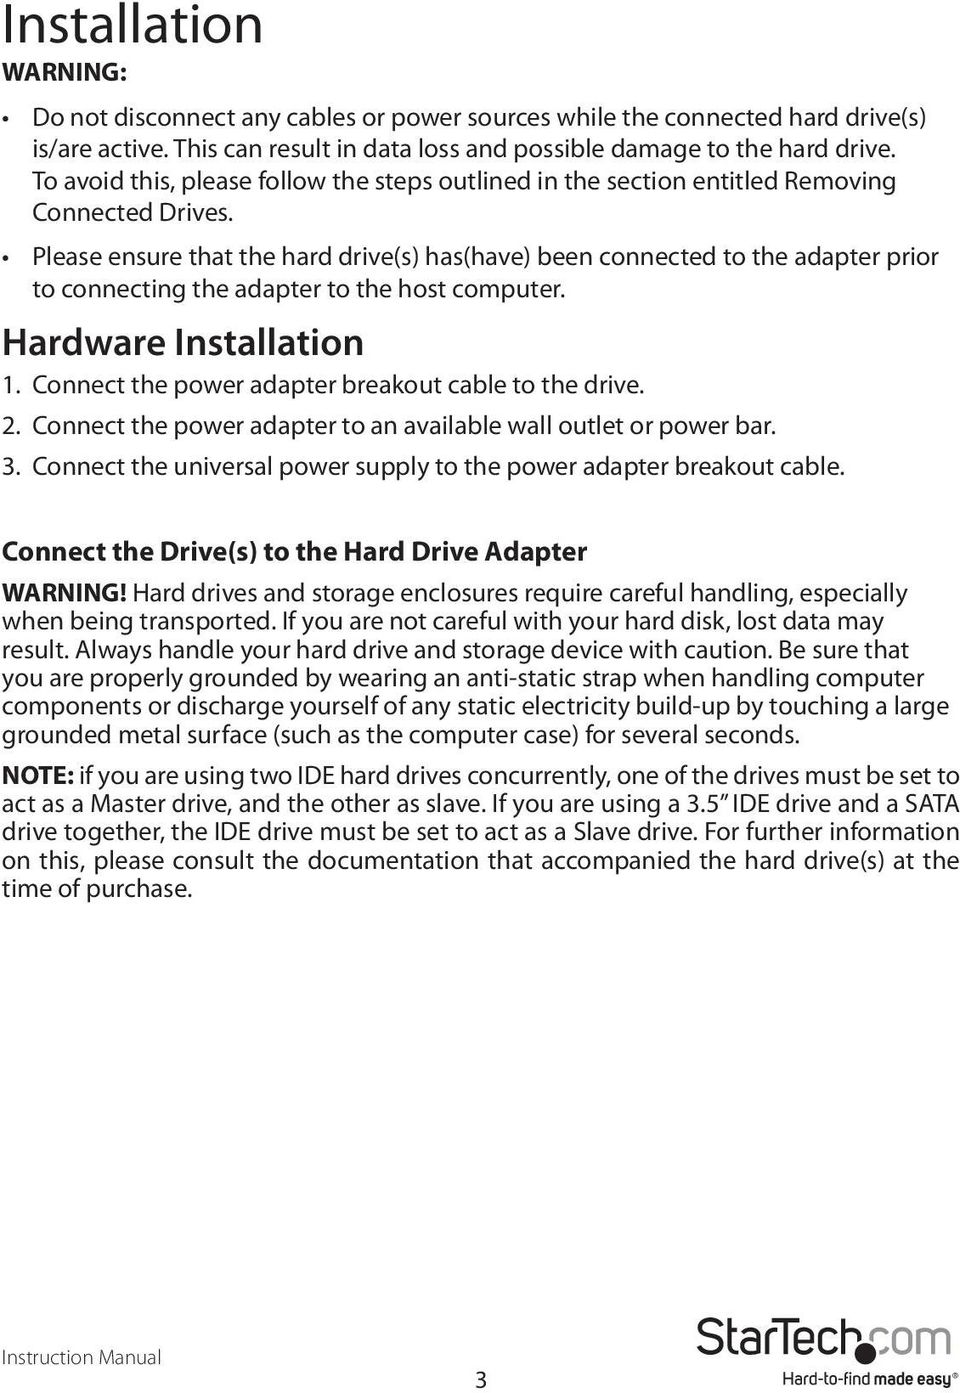 Please ensure that the hard drive(s) has(have) been connected to the adapter prior to connecting the adapter to the host computer. Hardware Installation 1.